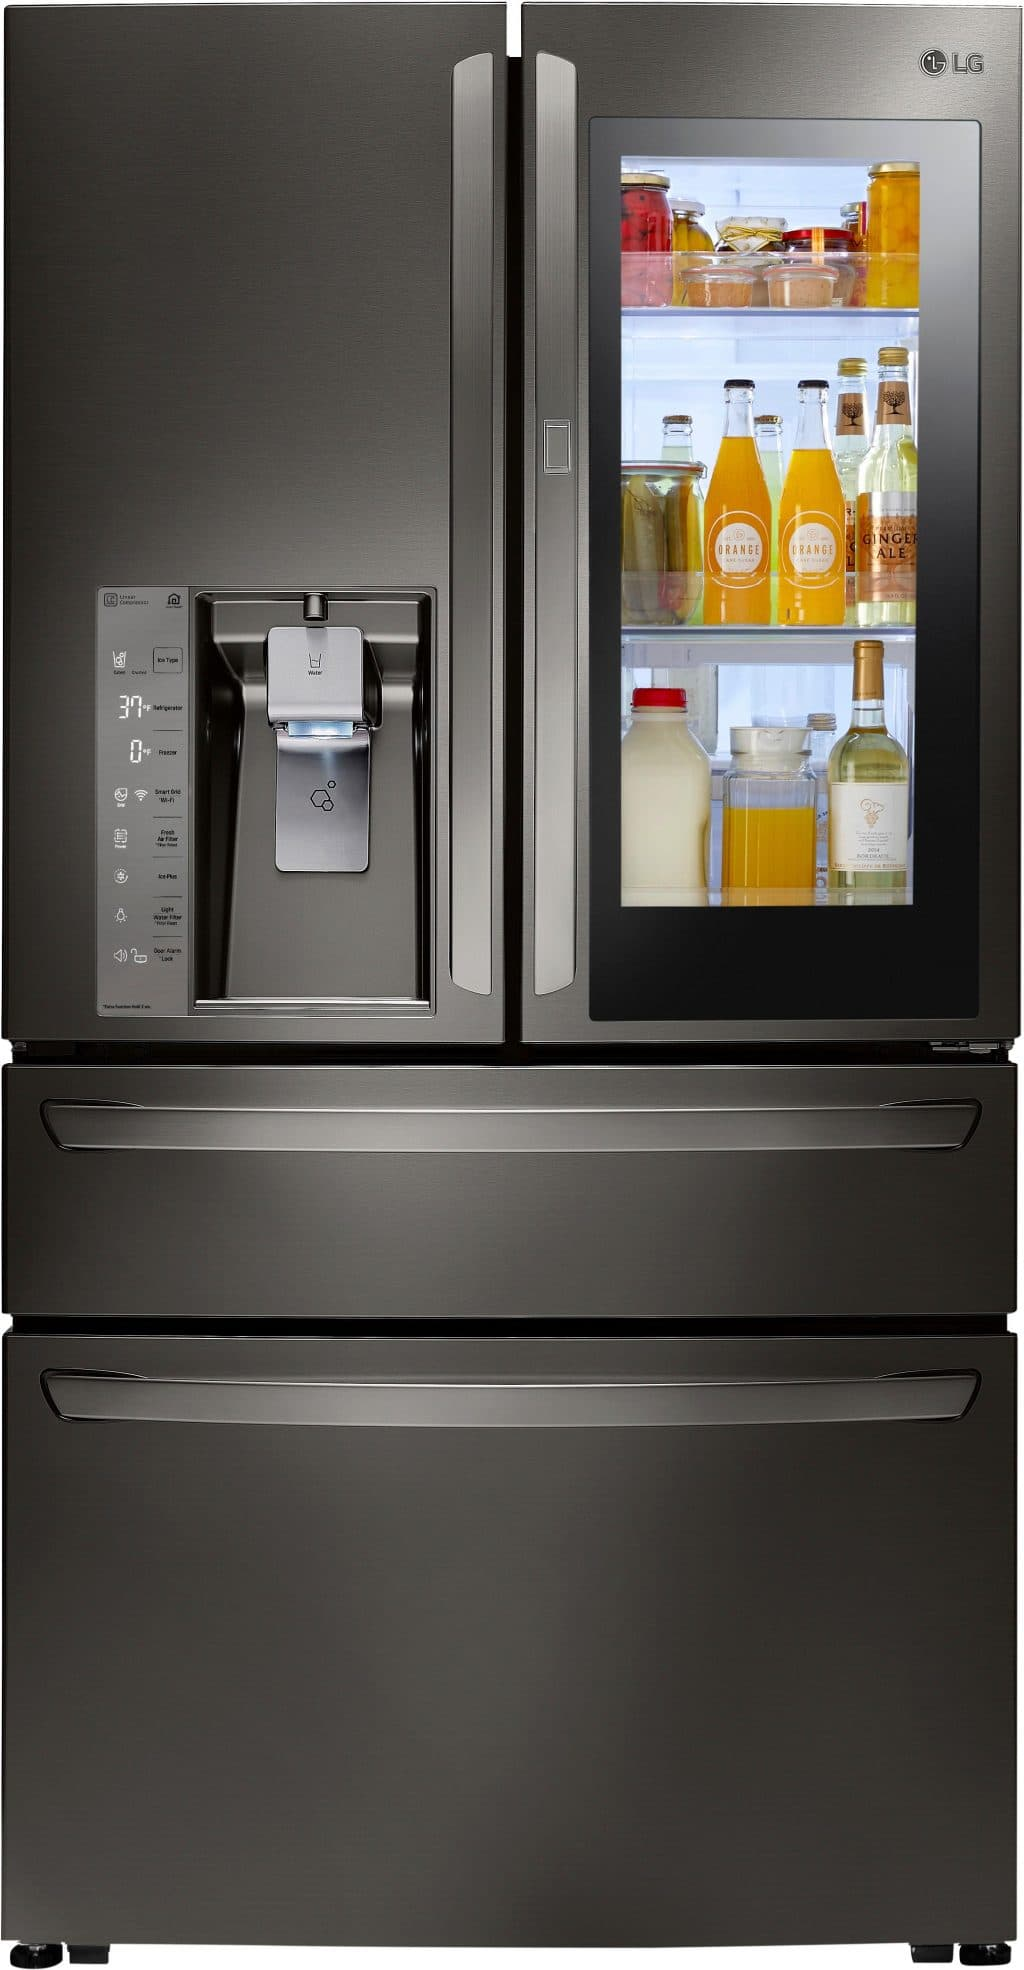 lg refrigerator instaview. technology blows me away and this happens to be one of those times. what has so amazed, you ask? it\u0027s the lg instaview door-in-door refrigerator, lg refrigerator instaview